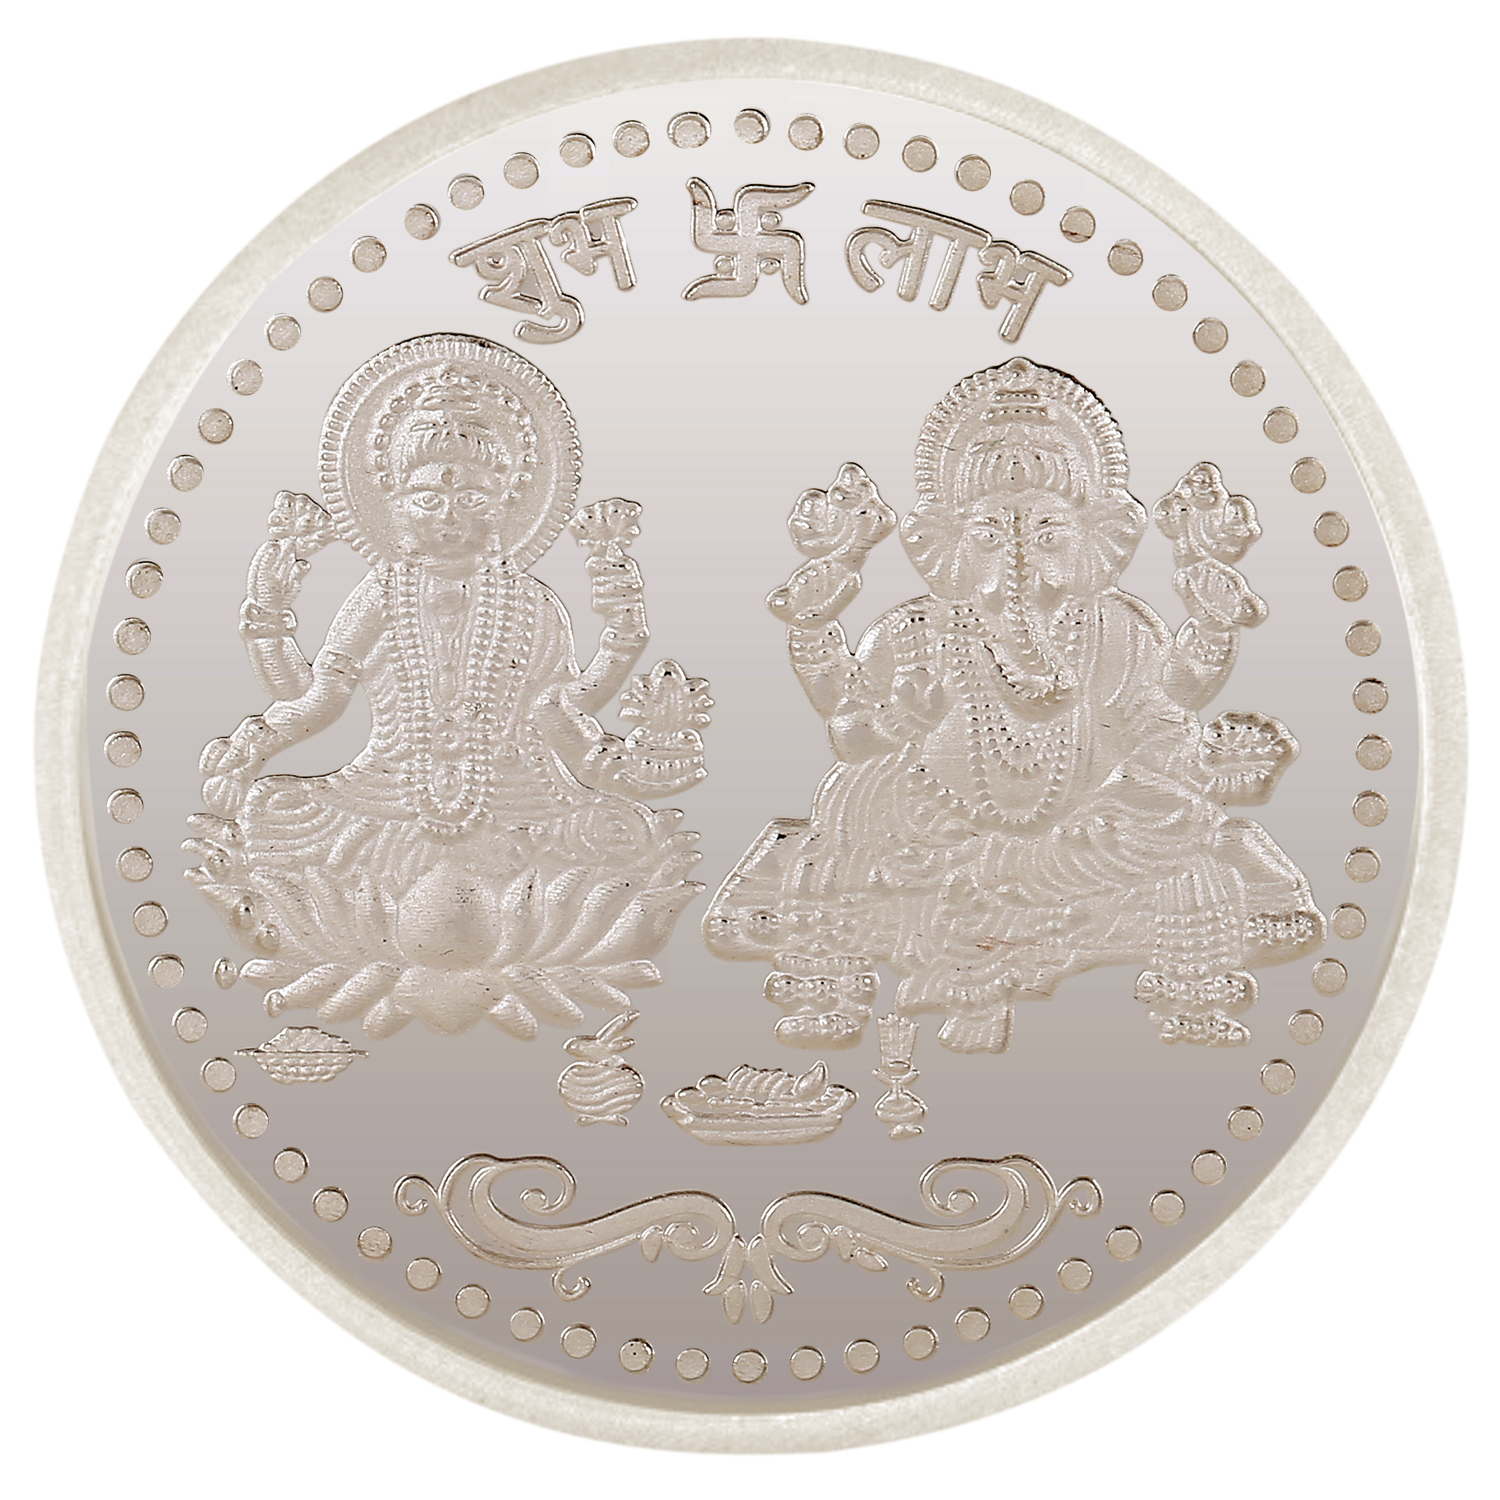 Ganesh Laxmi Coin in Silver 20gms by Osasbazaar Main